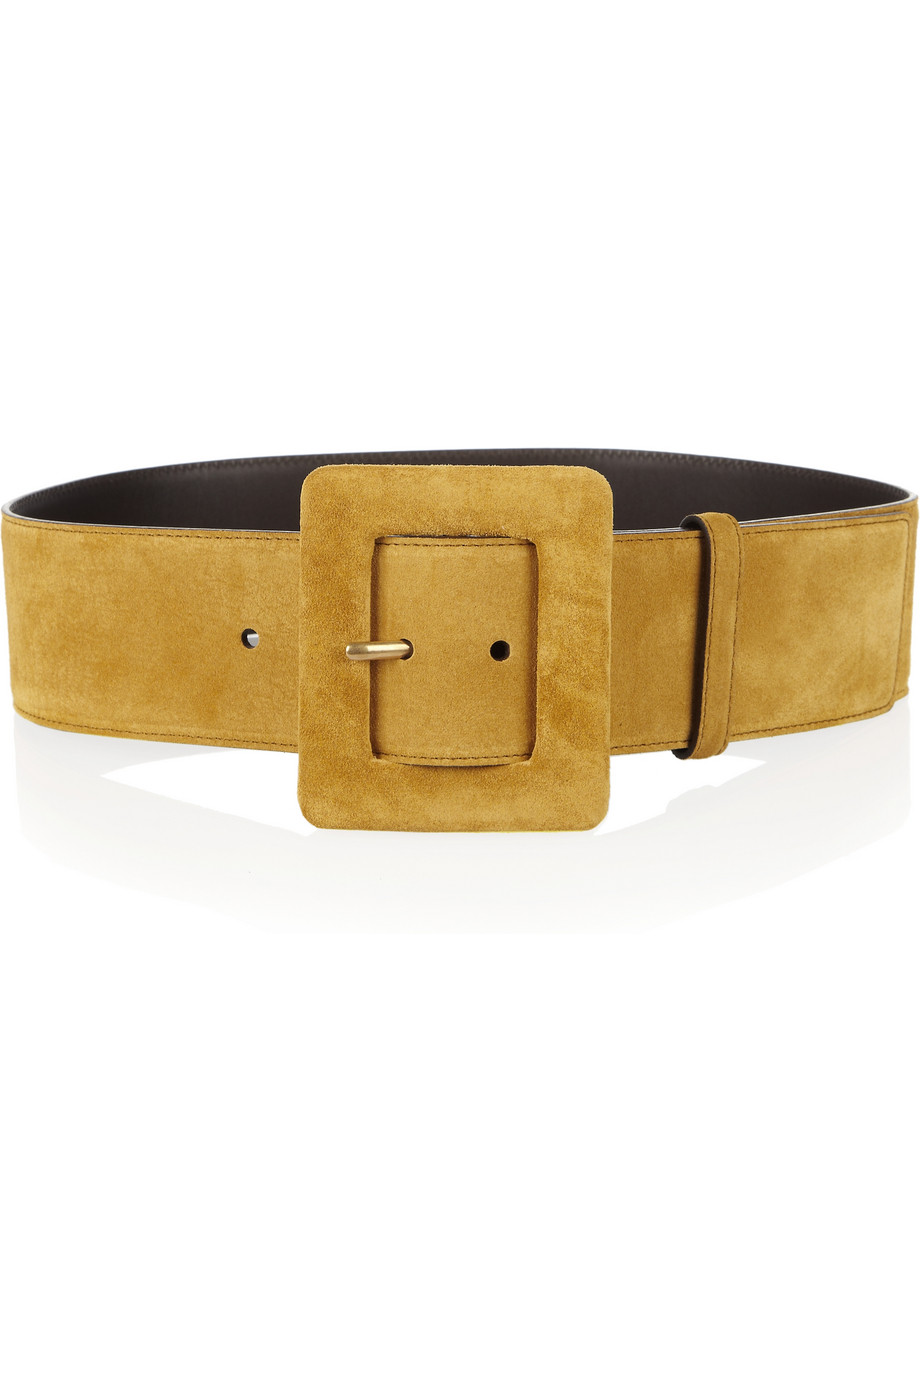 Saint Laurent Suede Waist Belt In Brown Saffron Lyst